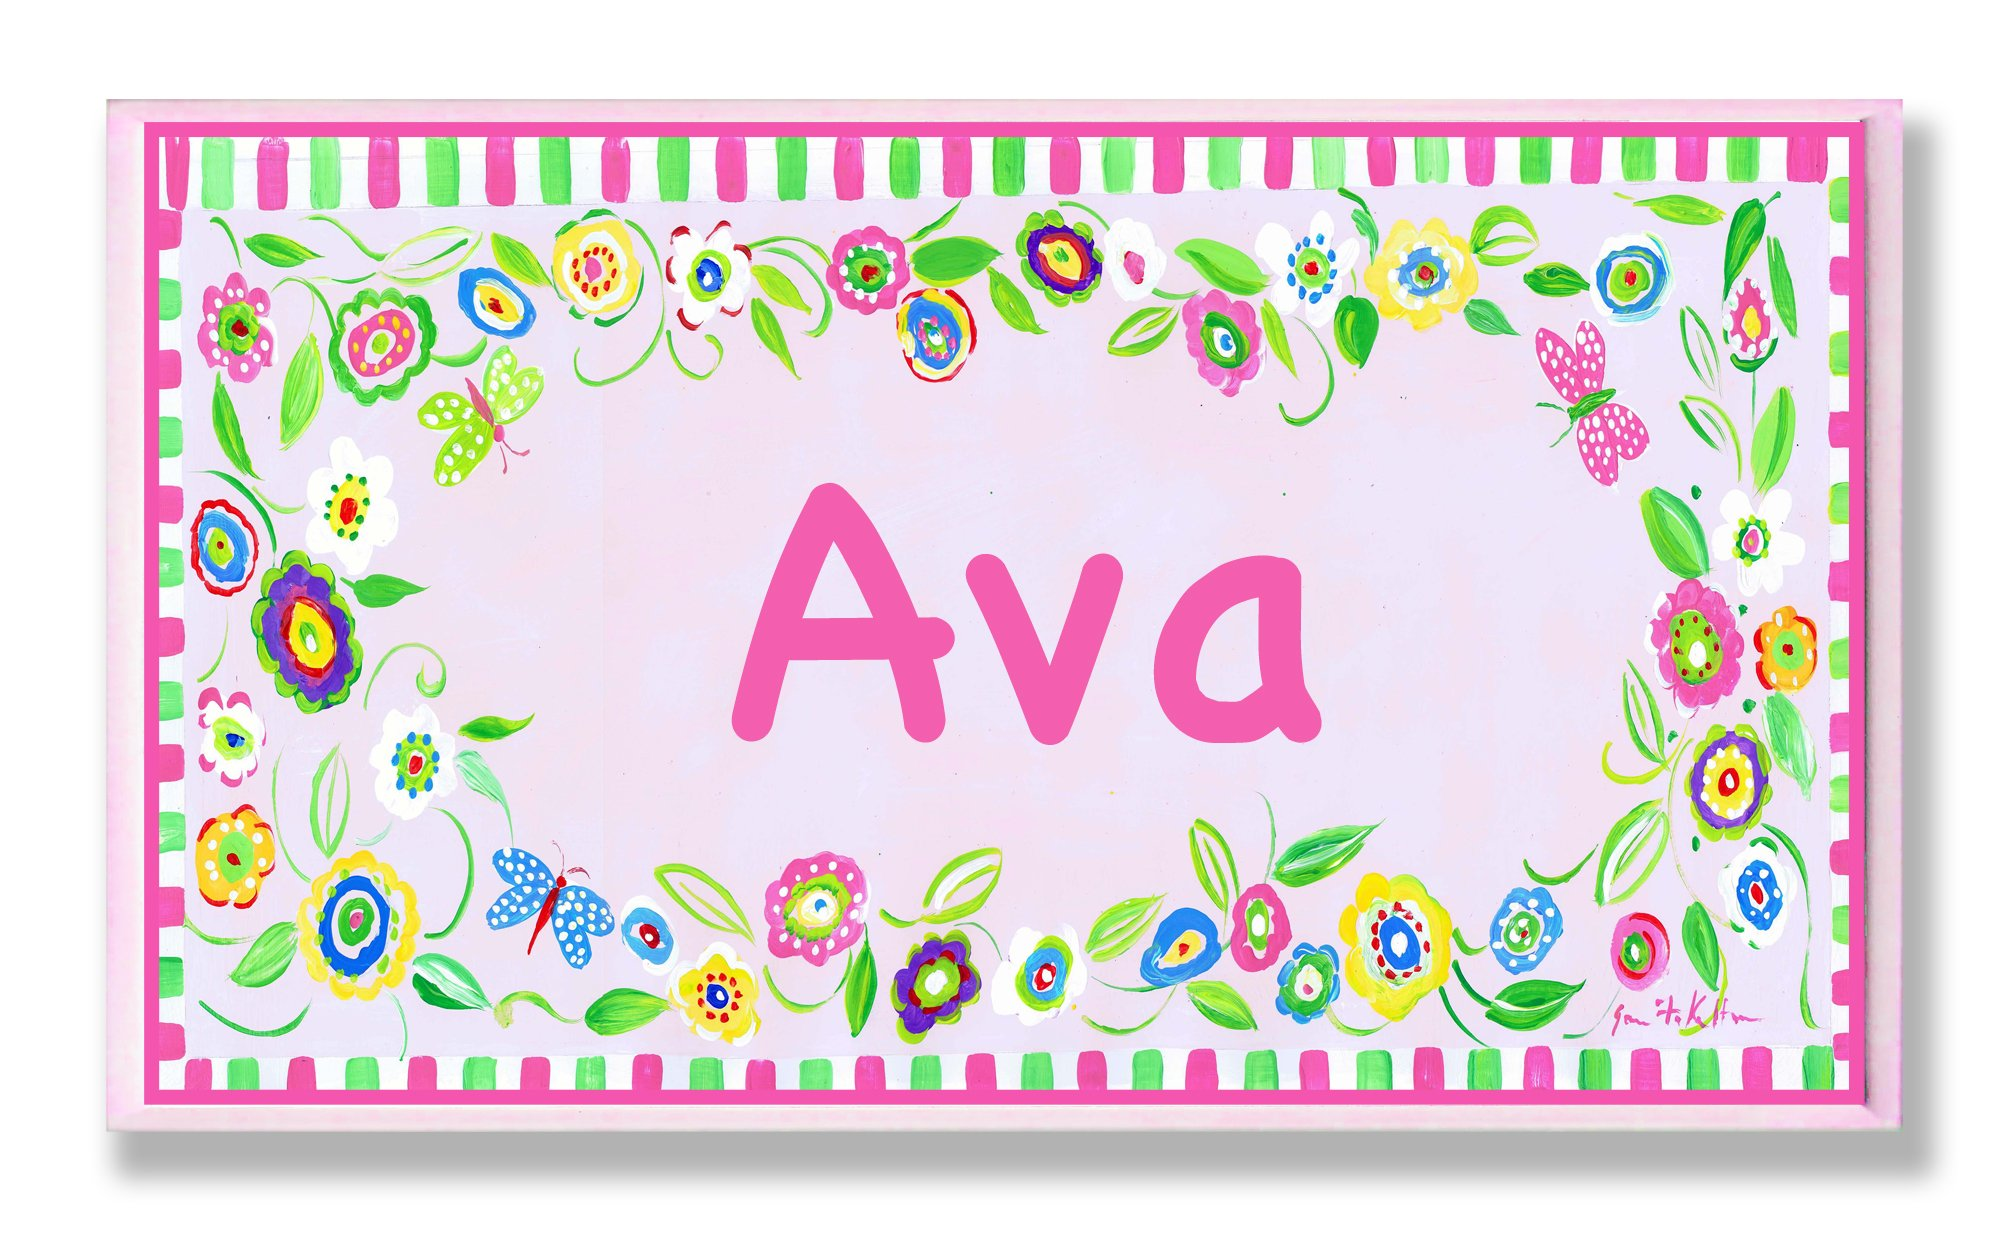 The Kids Room by Stupell Ava, Pink and Green Border with Flowers Personalized Rectangle Wall Plaque by The Kids Room by Stupell (Image #1)